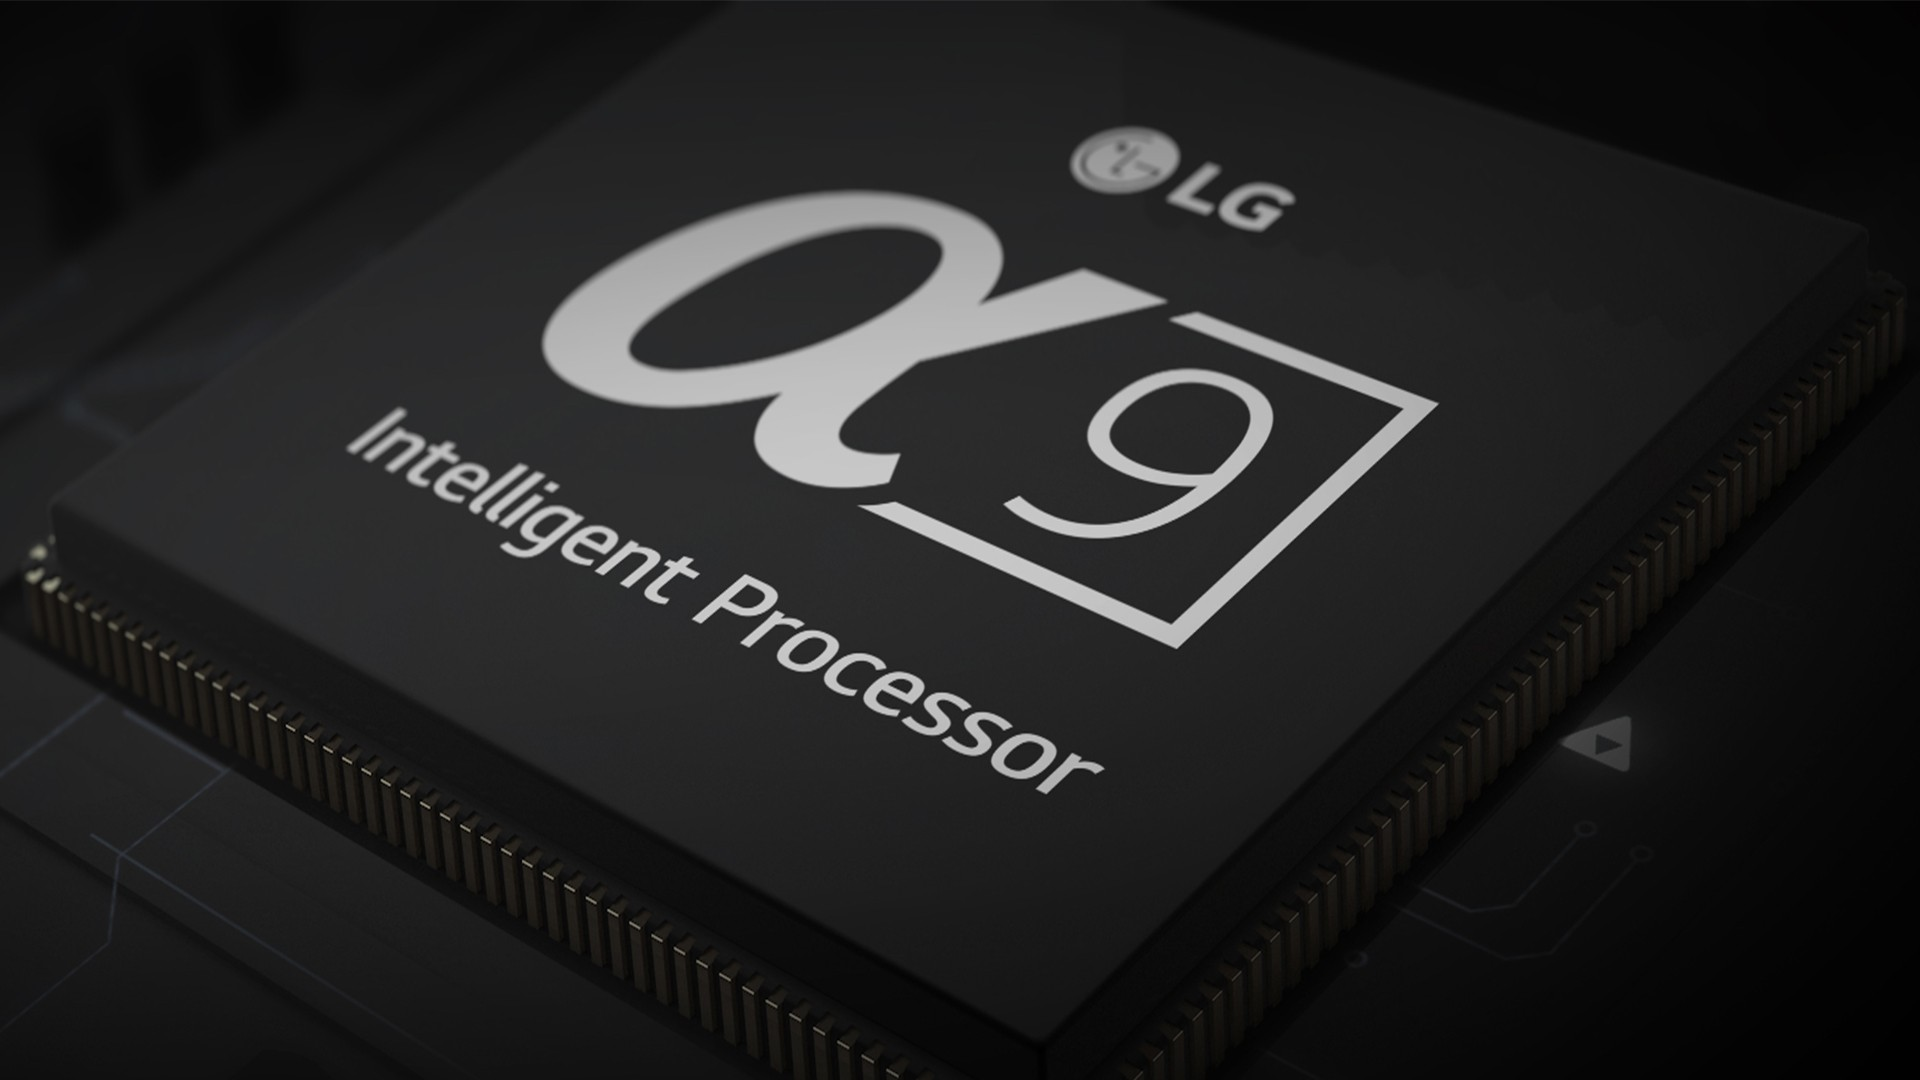 LG a9 intelligent processor